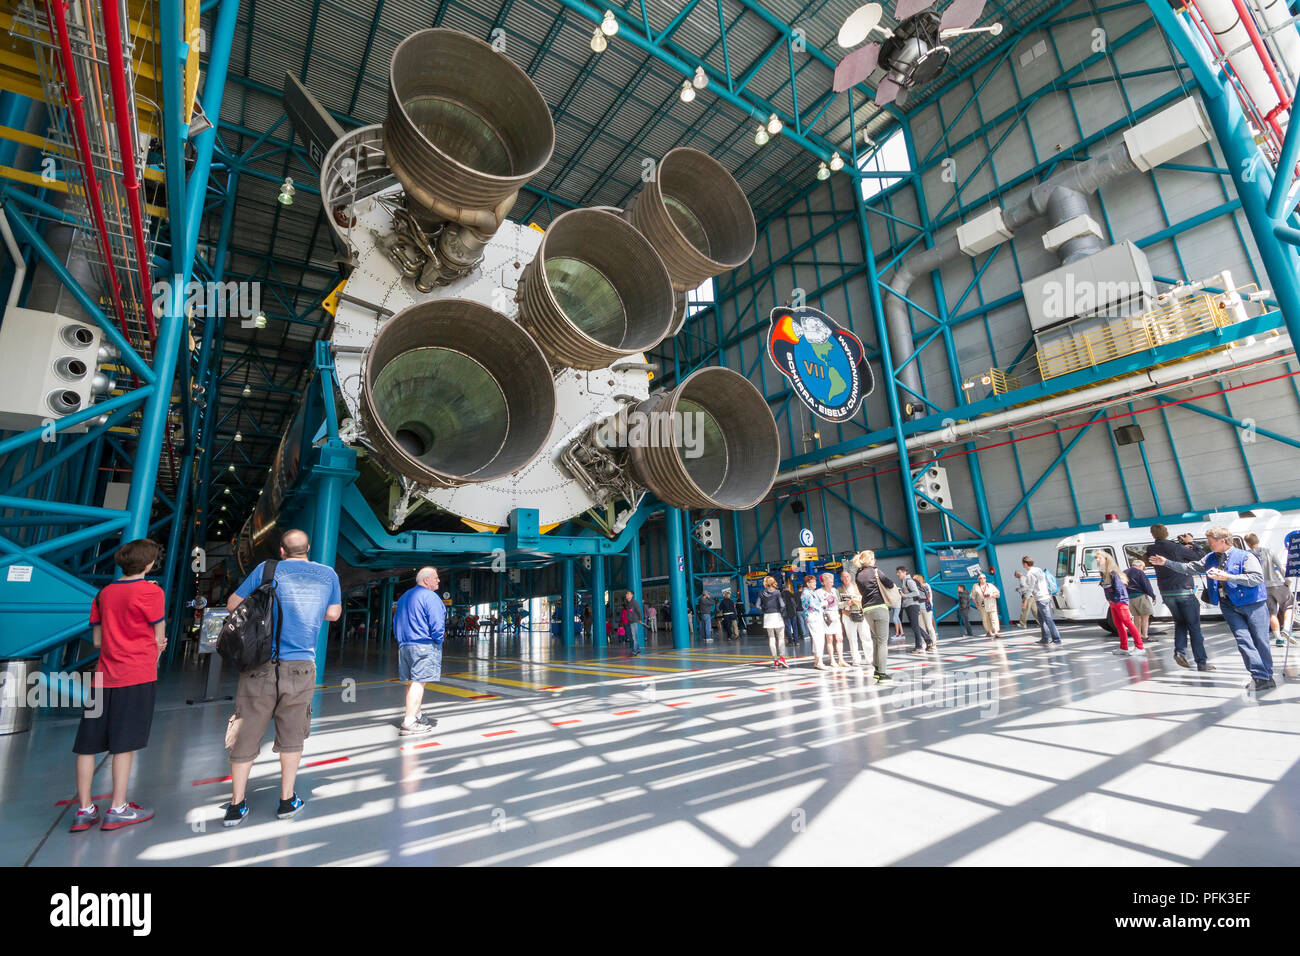 Saturn V Moon Rocket Engines at Kennedy Space Center, Florida. - Stock Image